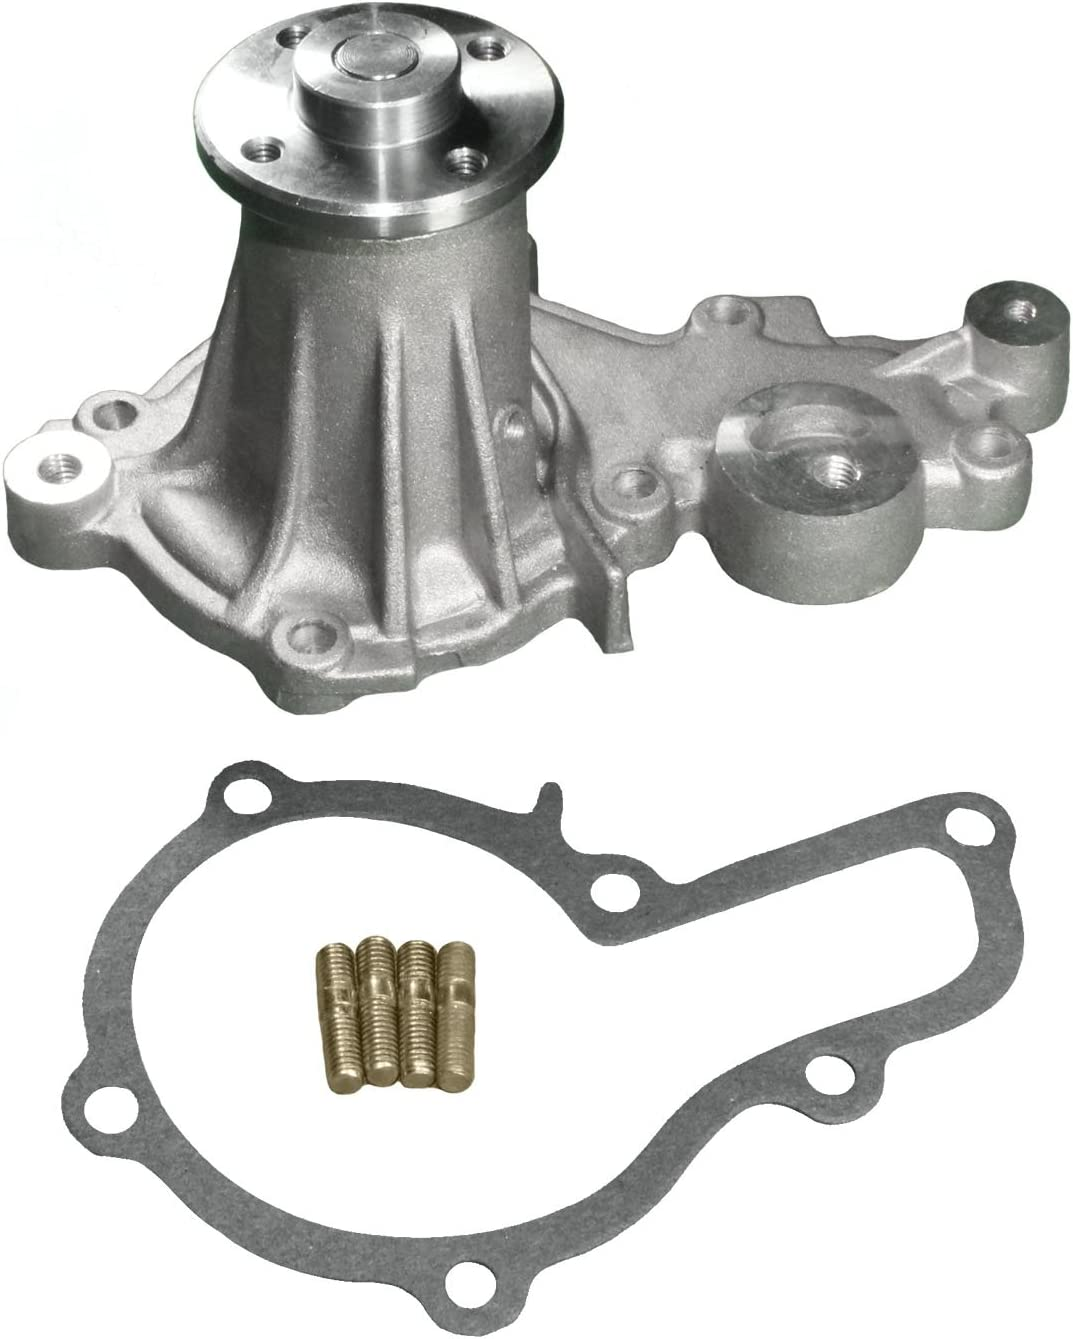 Engine Water Pump ACDelco Pro 252-601